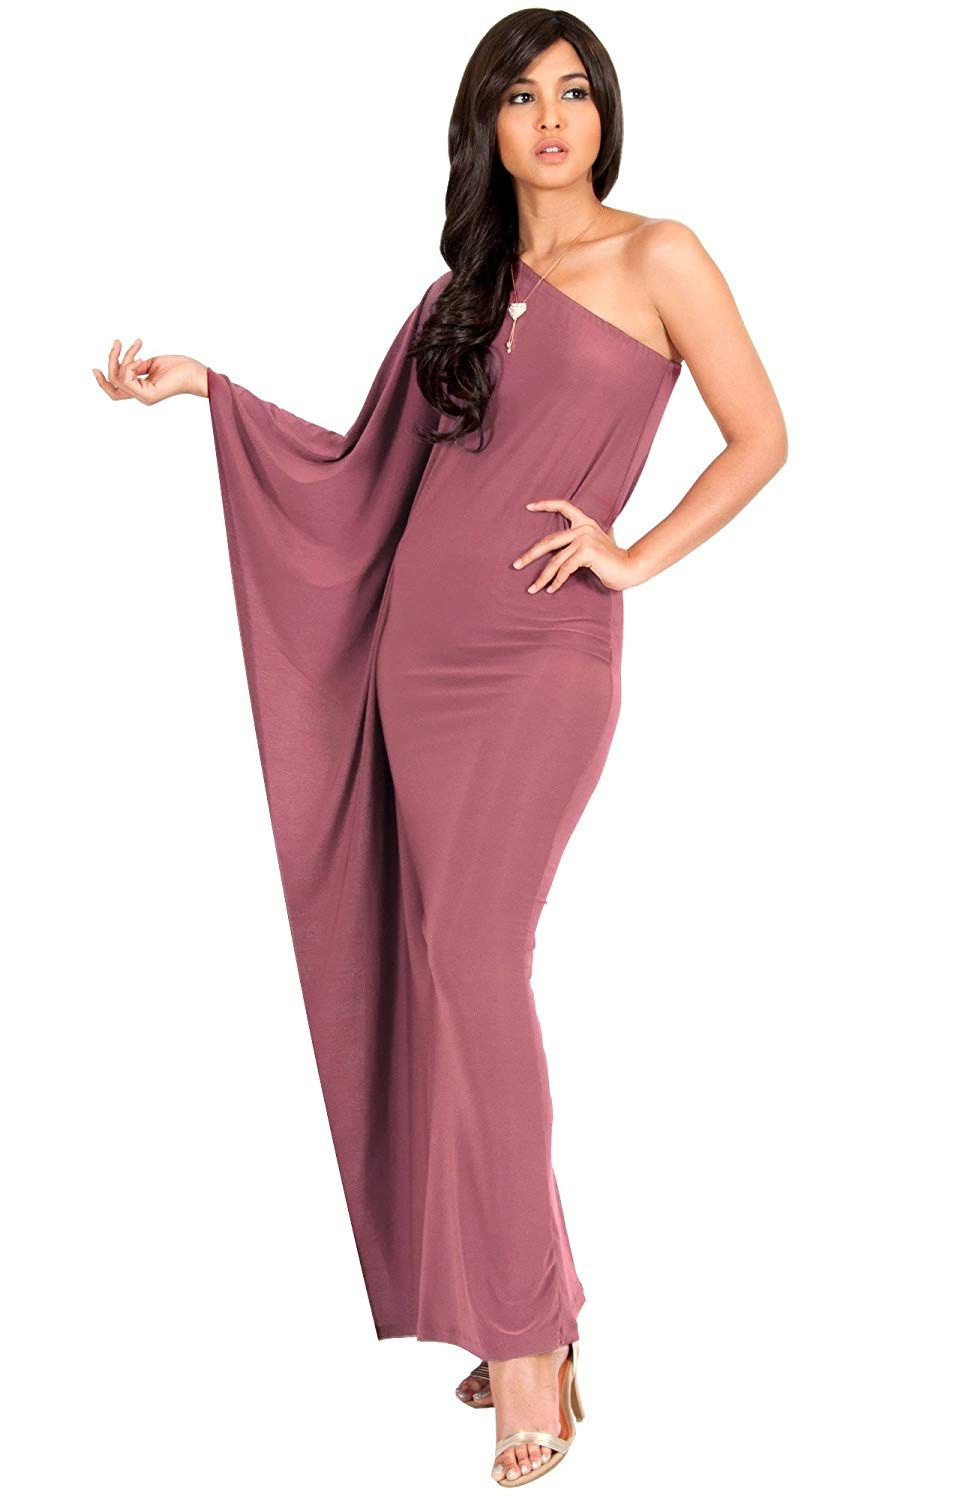 bcc98c60a82 KOH KOH Womens Long Sexy One Shoulder Evening Cocktail Semi Formal Maxi  Dress... More information can be located at the image url.